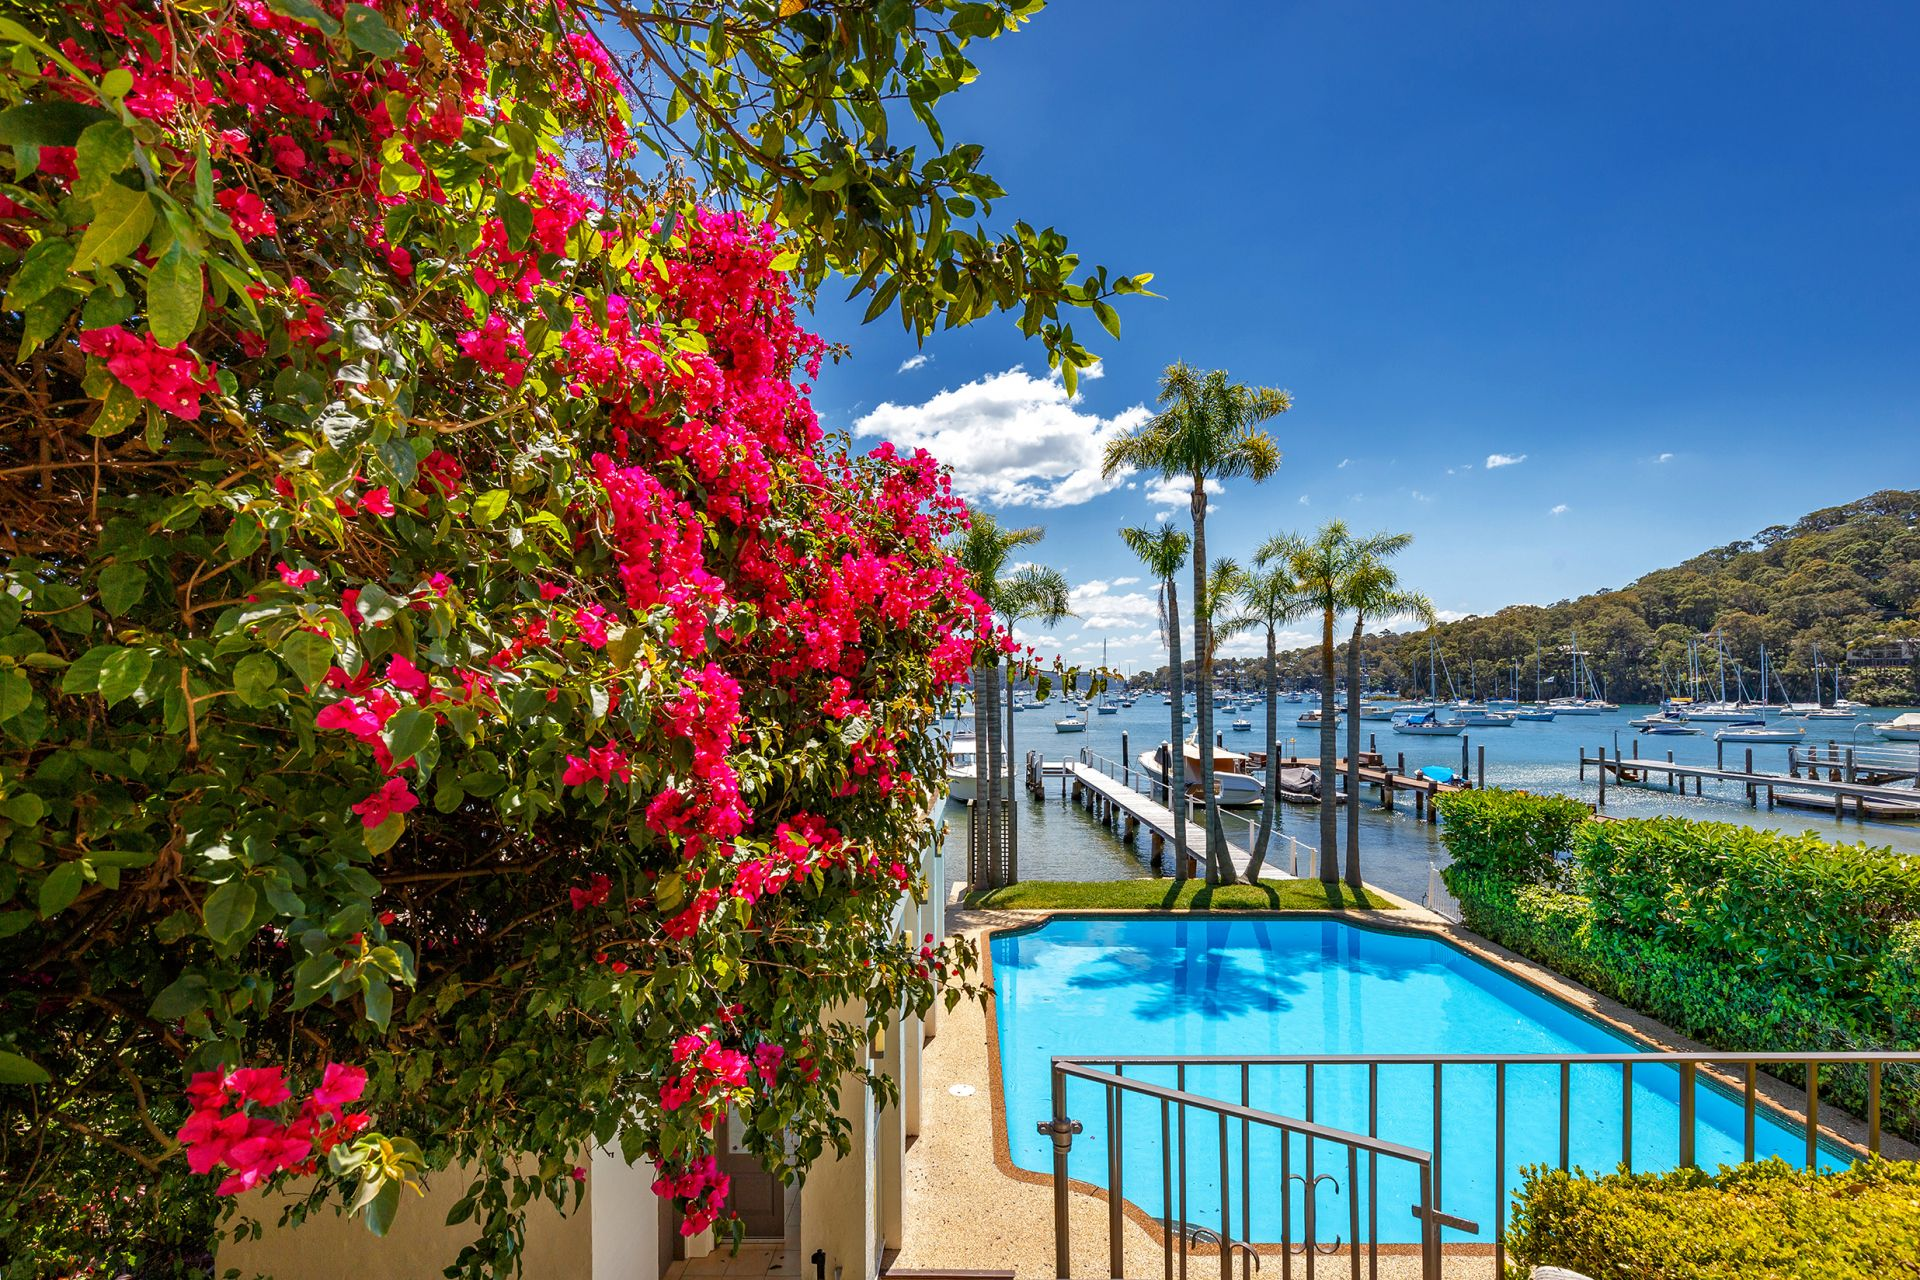 Additional photo for property listing at 'La Dolce Vita' - Mediterranean-inspired waterfront 98 Prince Alfred Parade Newport, New South Wales,2106 オーストラリア